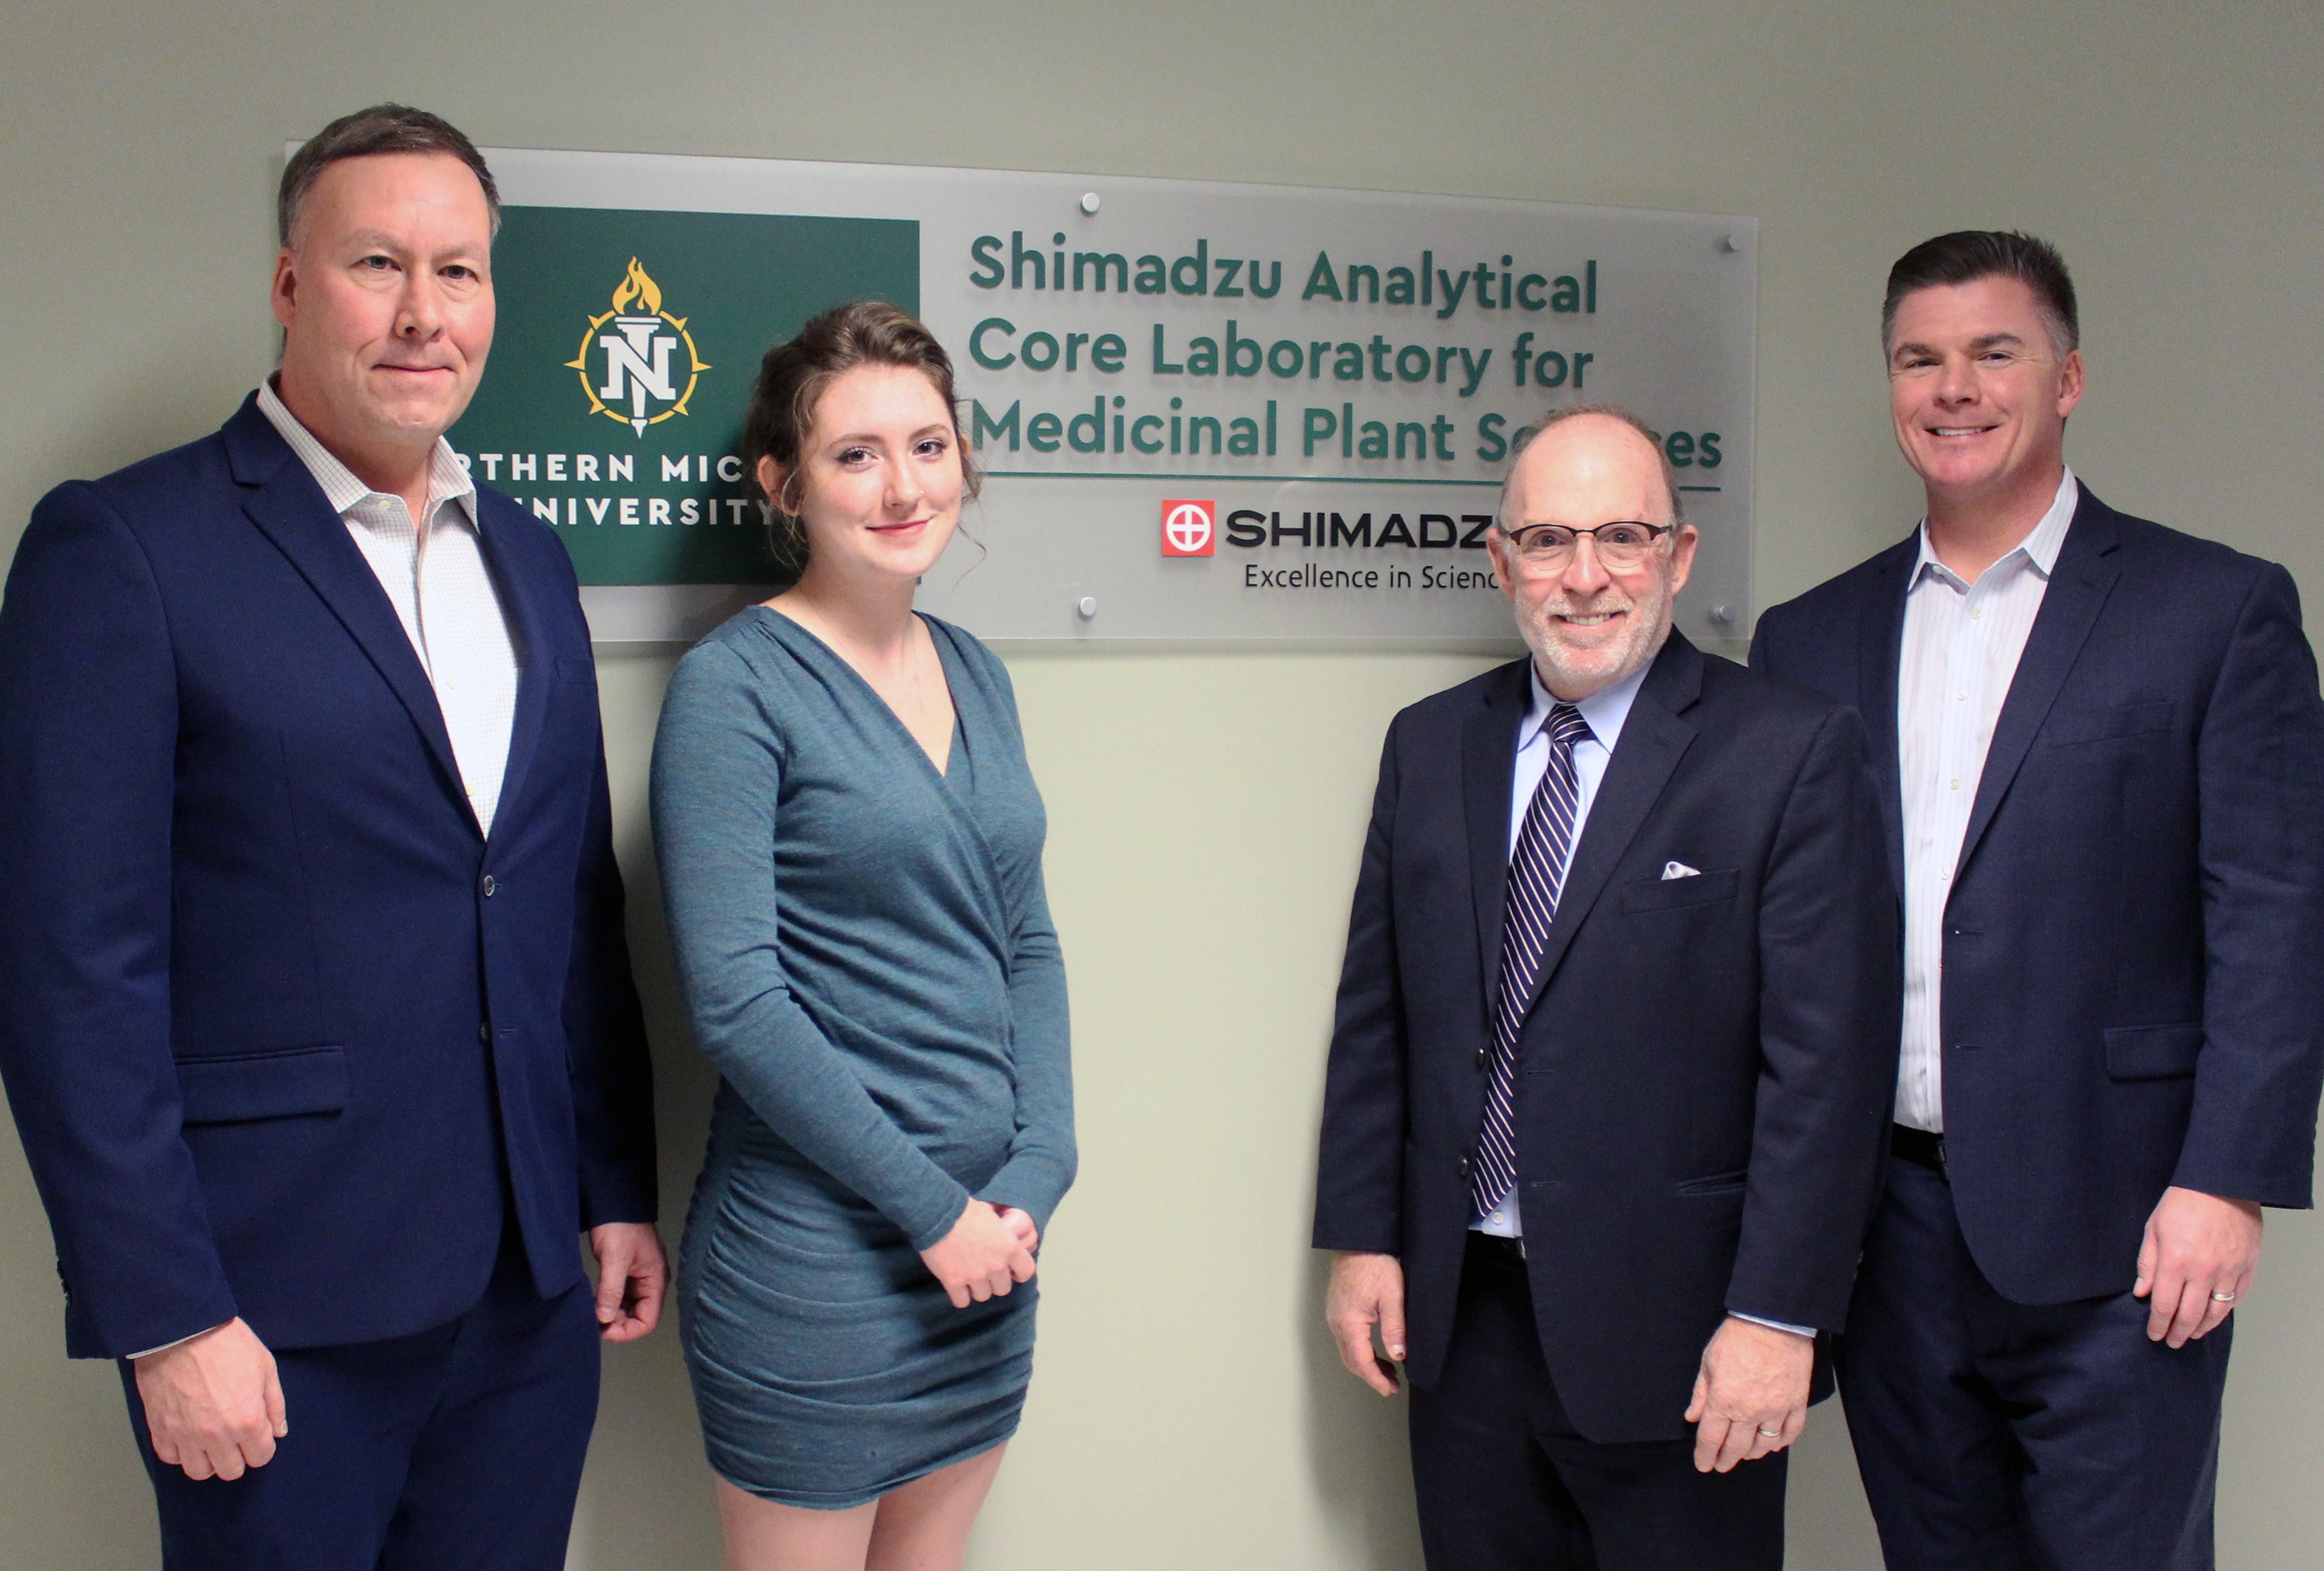 Dedication of Shimadzu Analytical Core Laboratory for Medicinal Plant Sciences